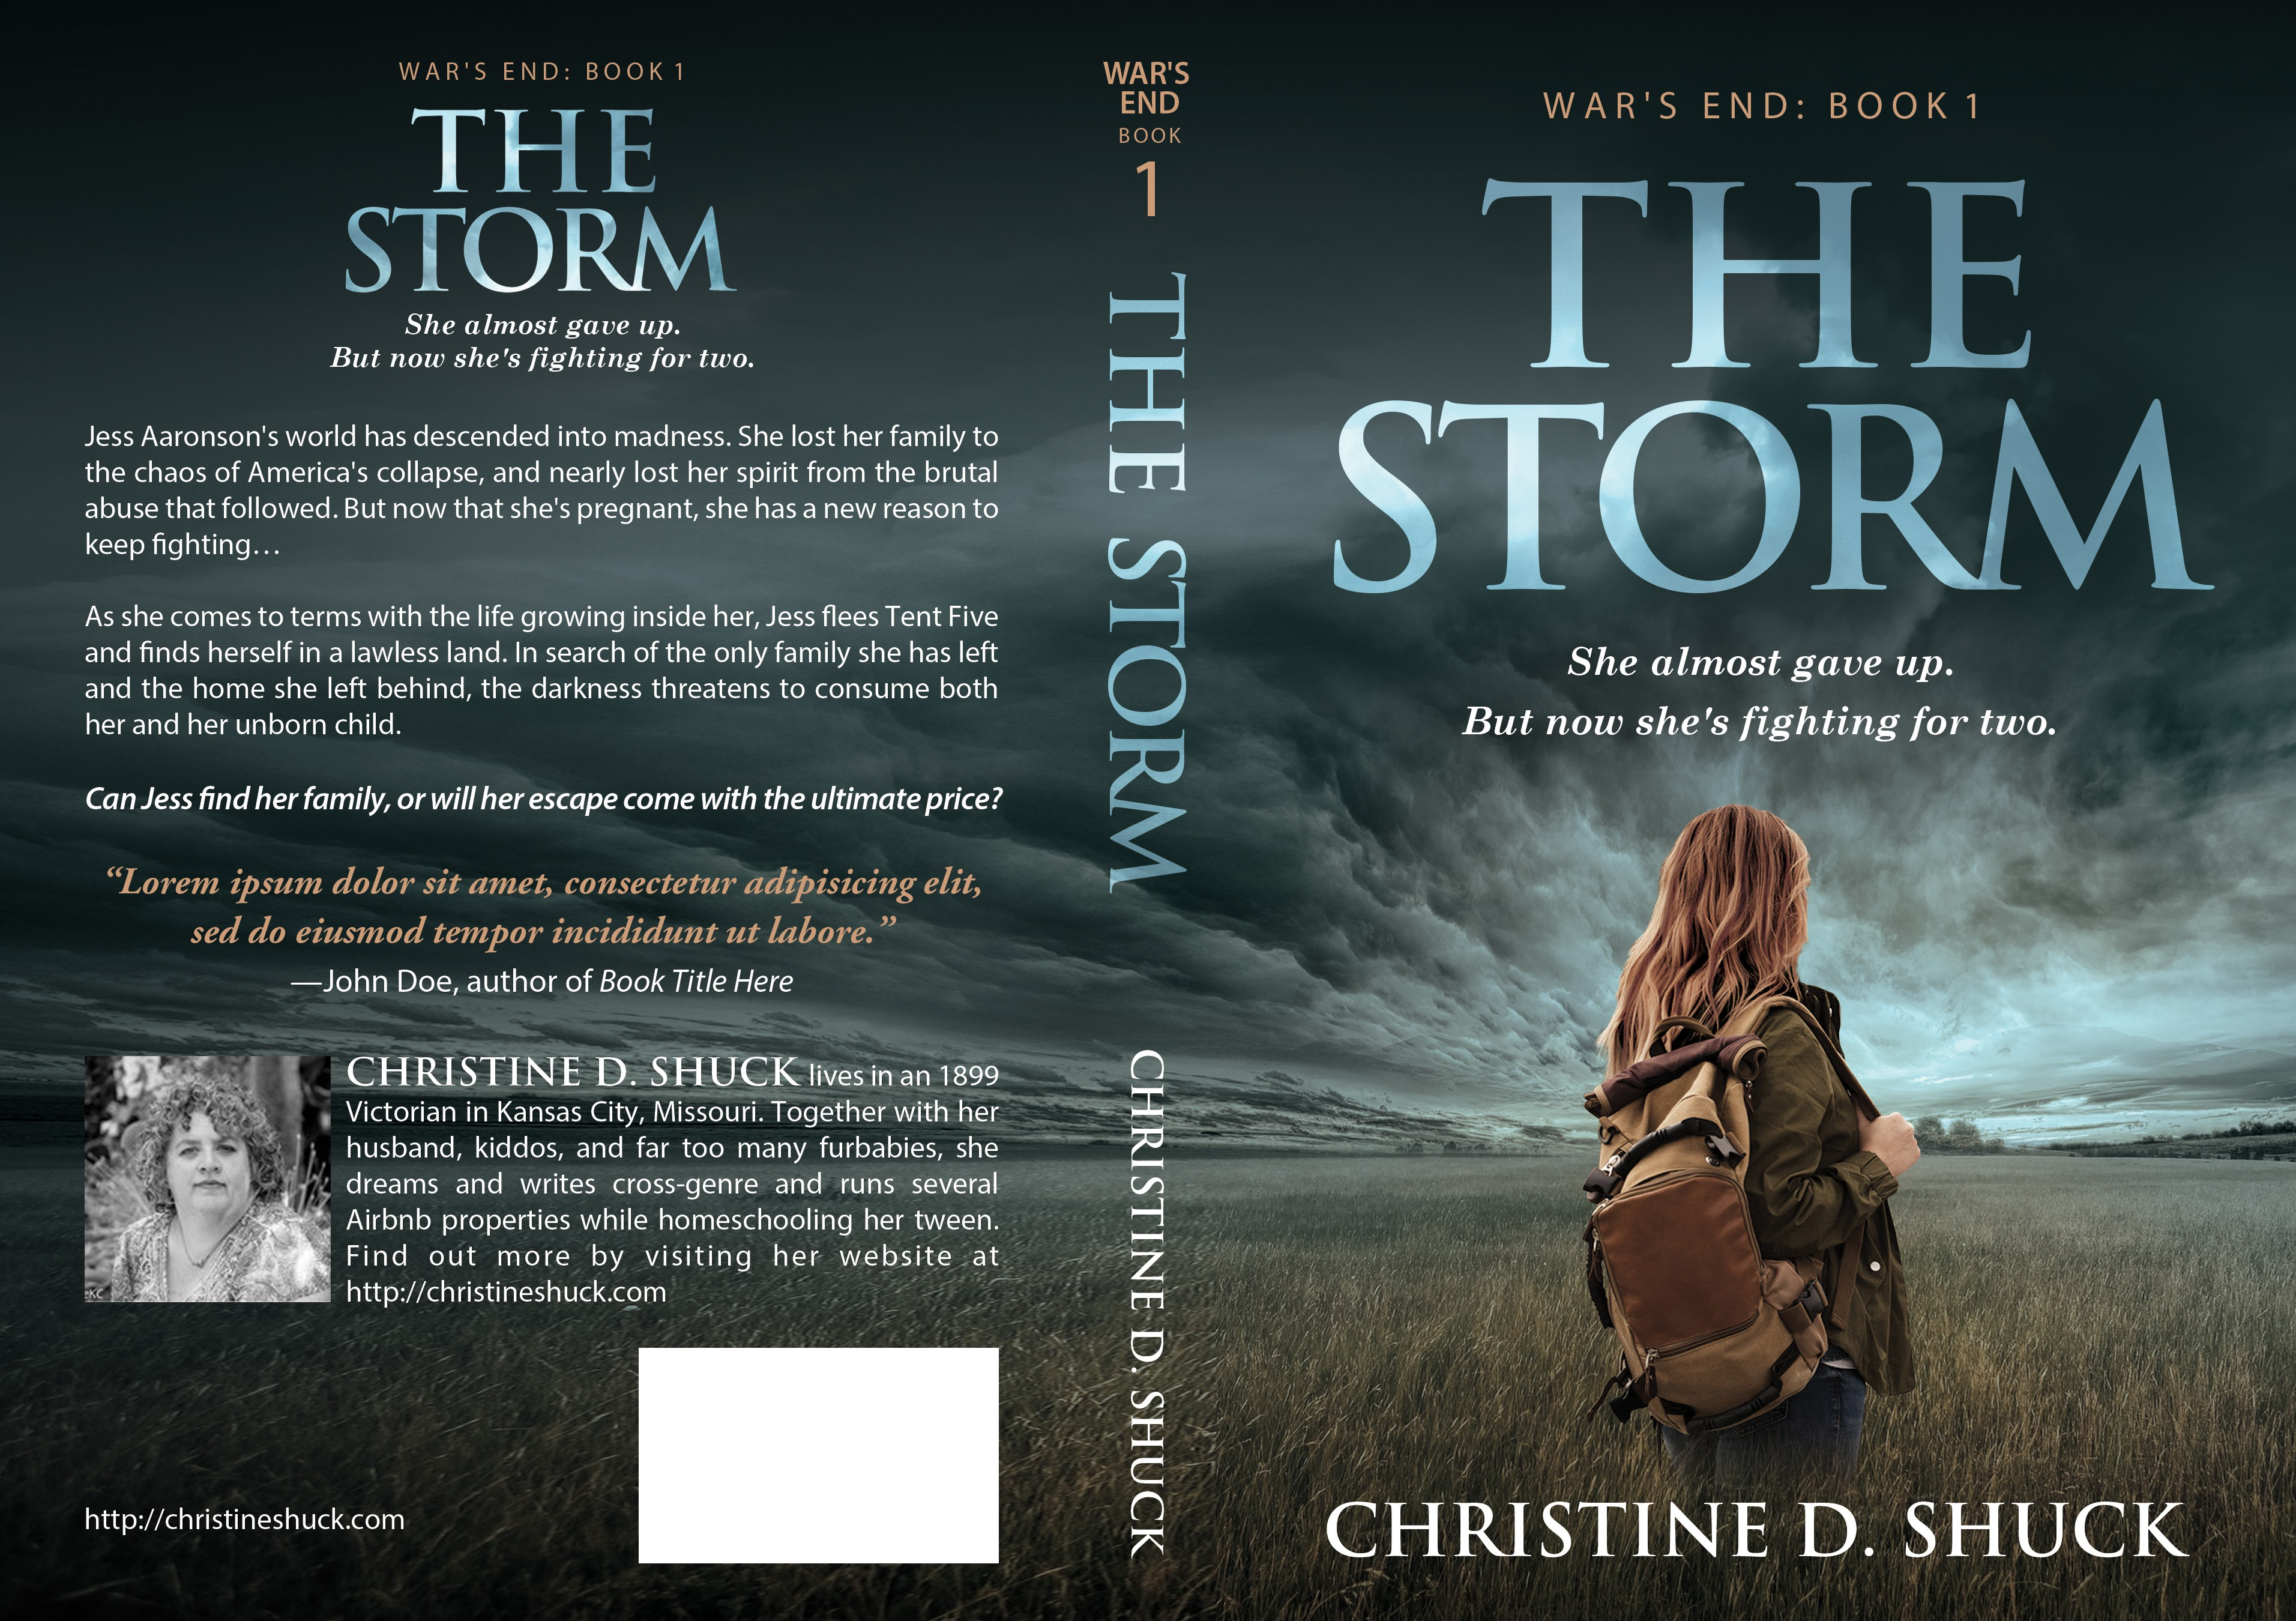 The Storm is coming - Are YOU Ready?